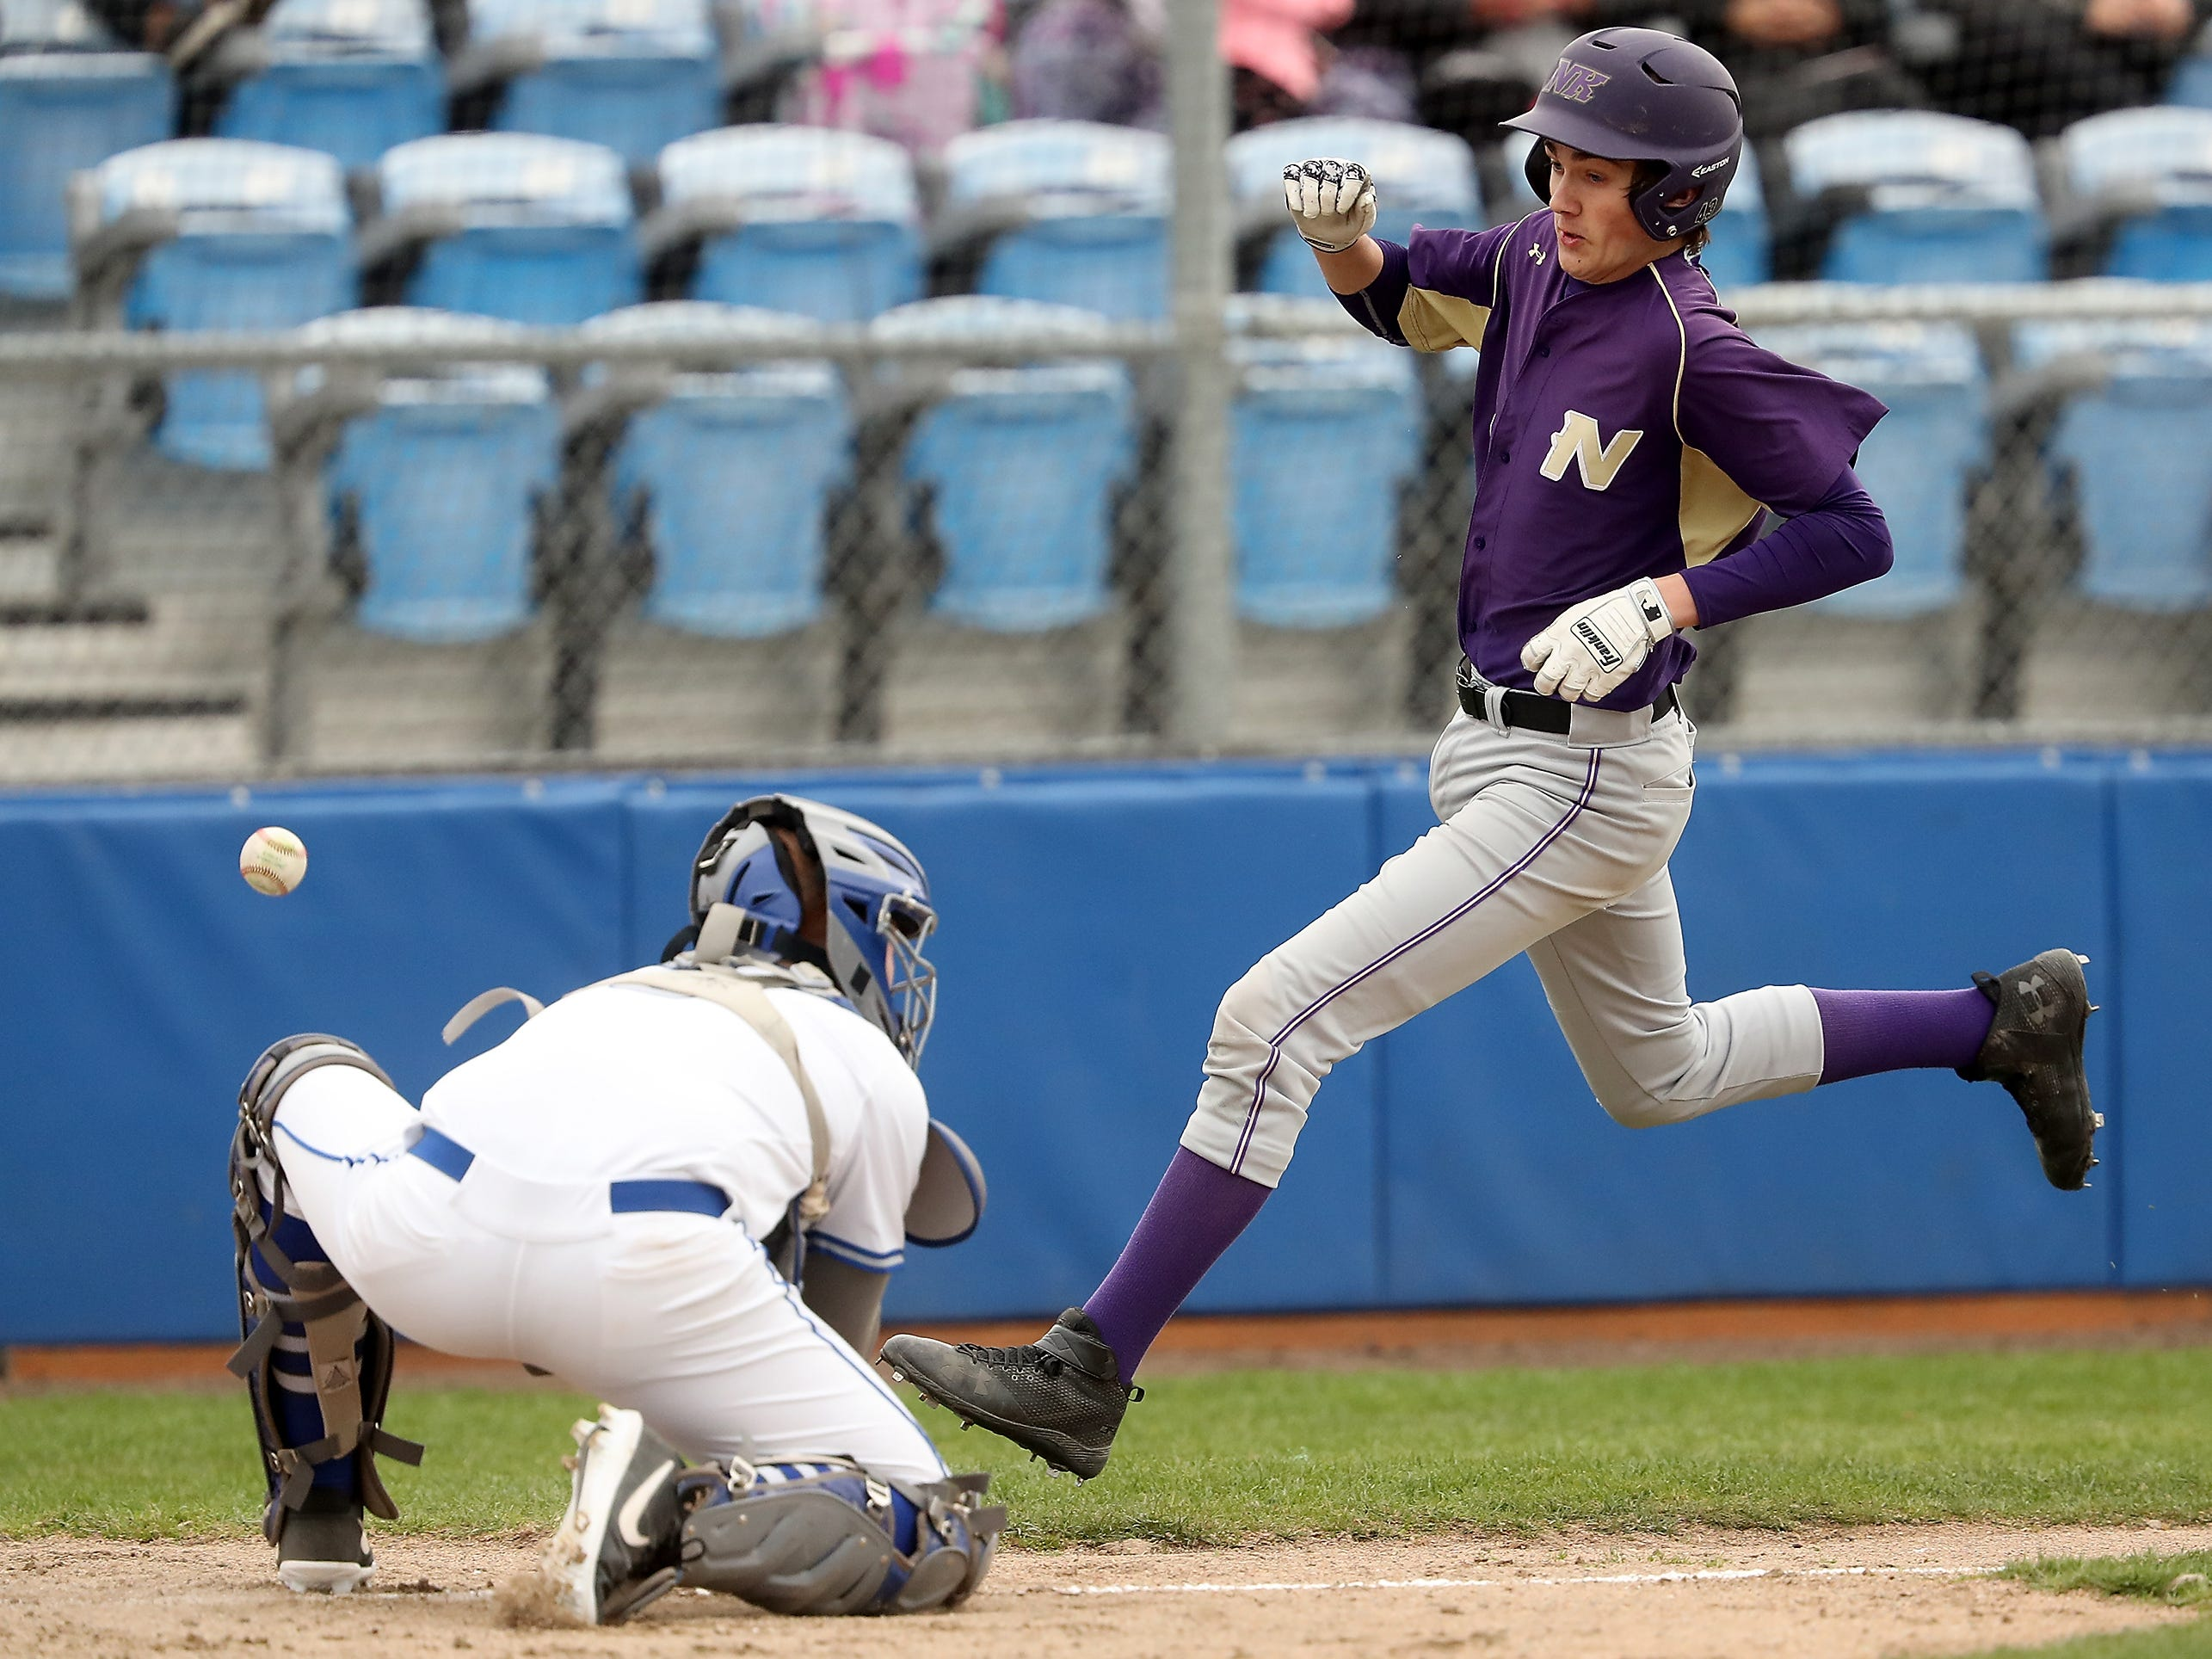 Olympic catcher Charlie Hennessy misses the catch as North Kitsap's Ryland Schmidt heads for home during their game at Gene Lobe Field on Wednesday, March 27, 2019.